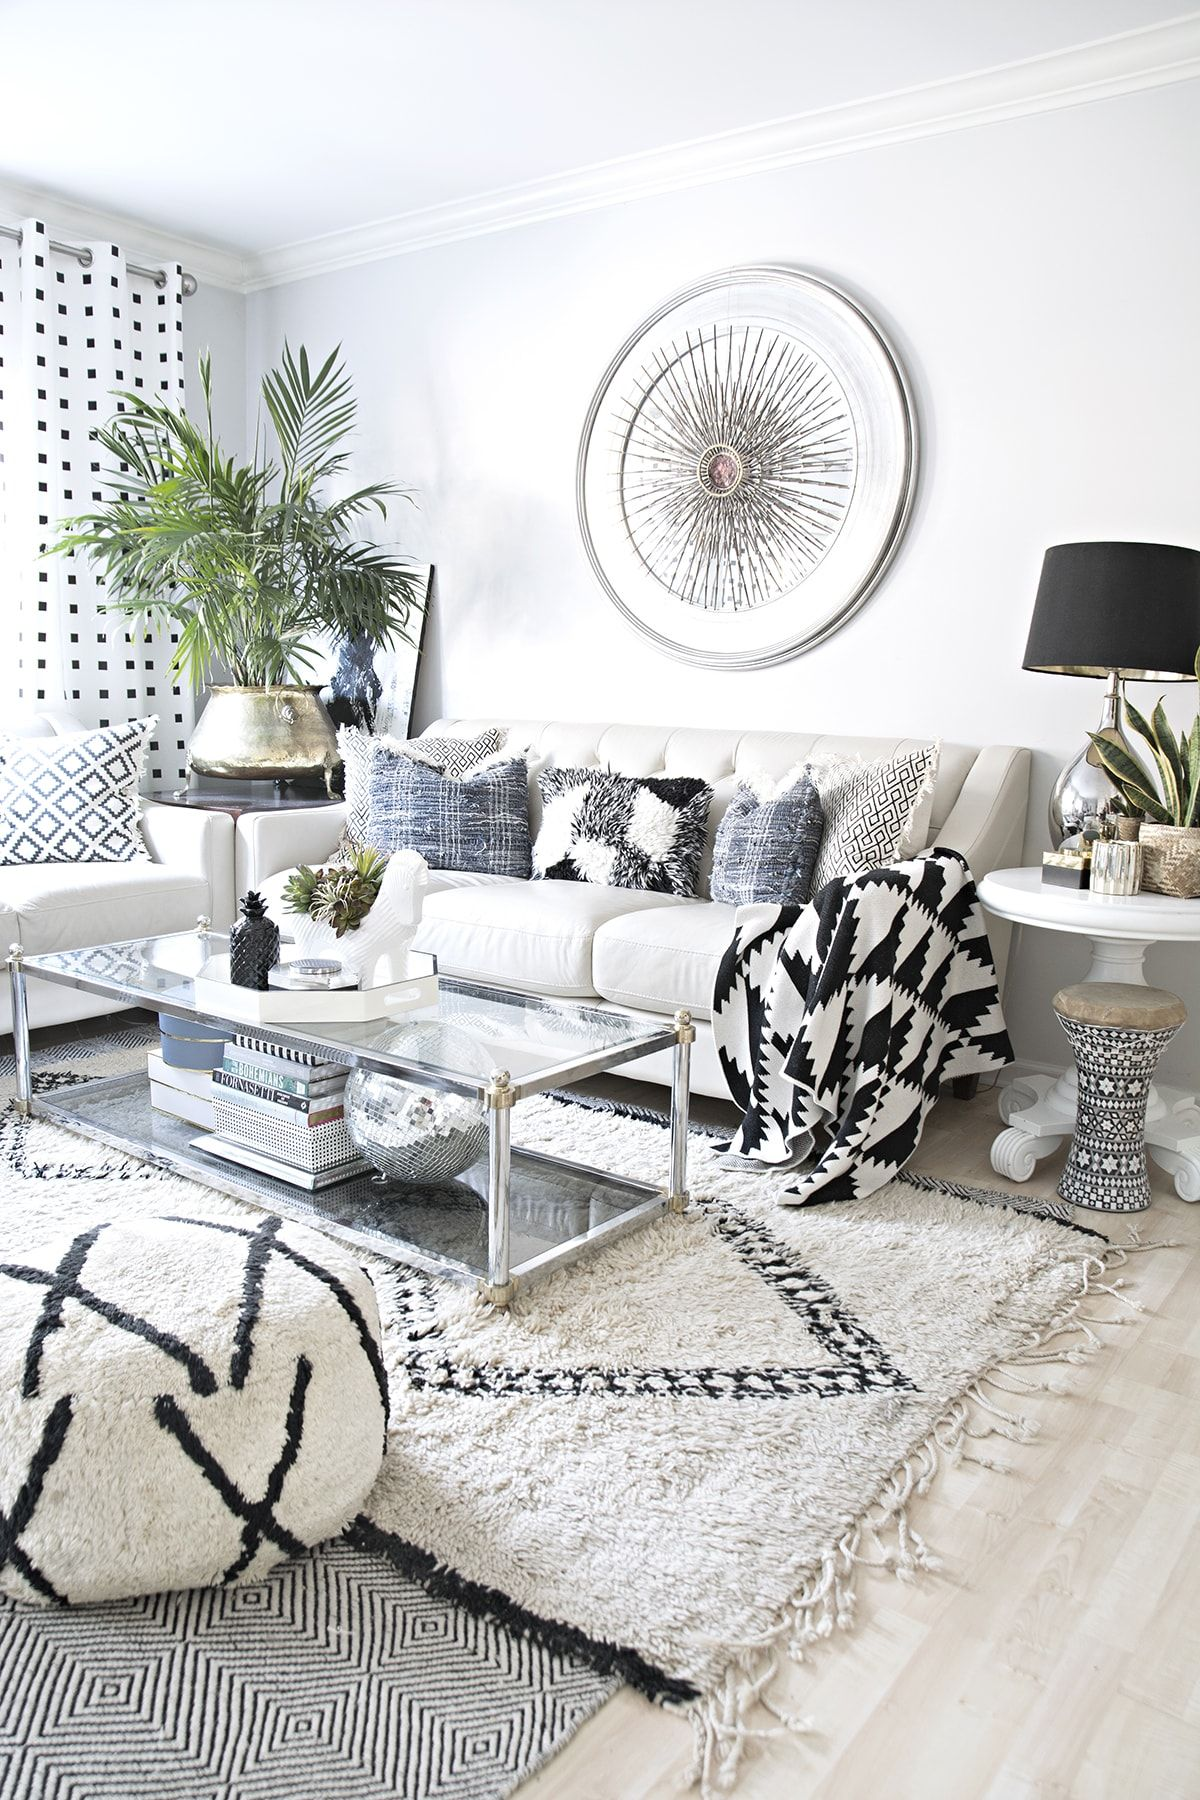 black and white curtains is part of Cottage Living Room Black - My favorite black and white curtains which would look nice in any style of home decor